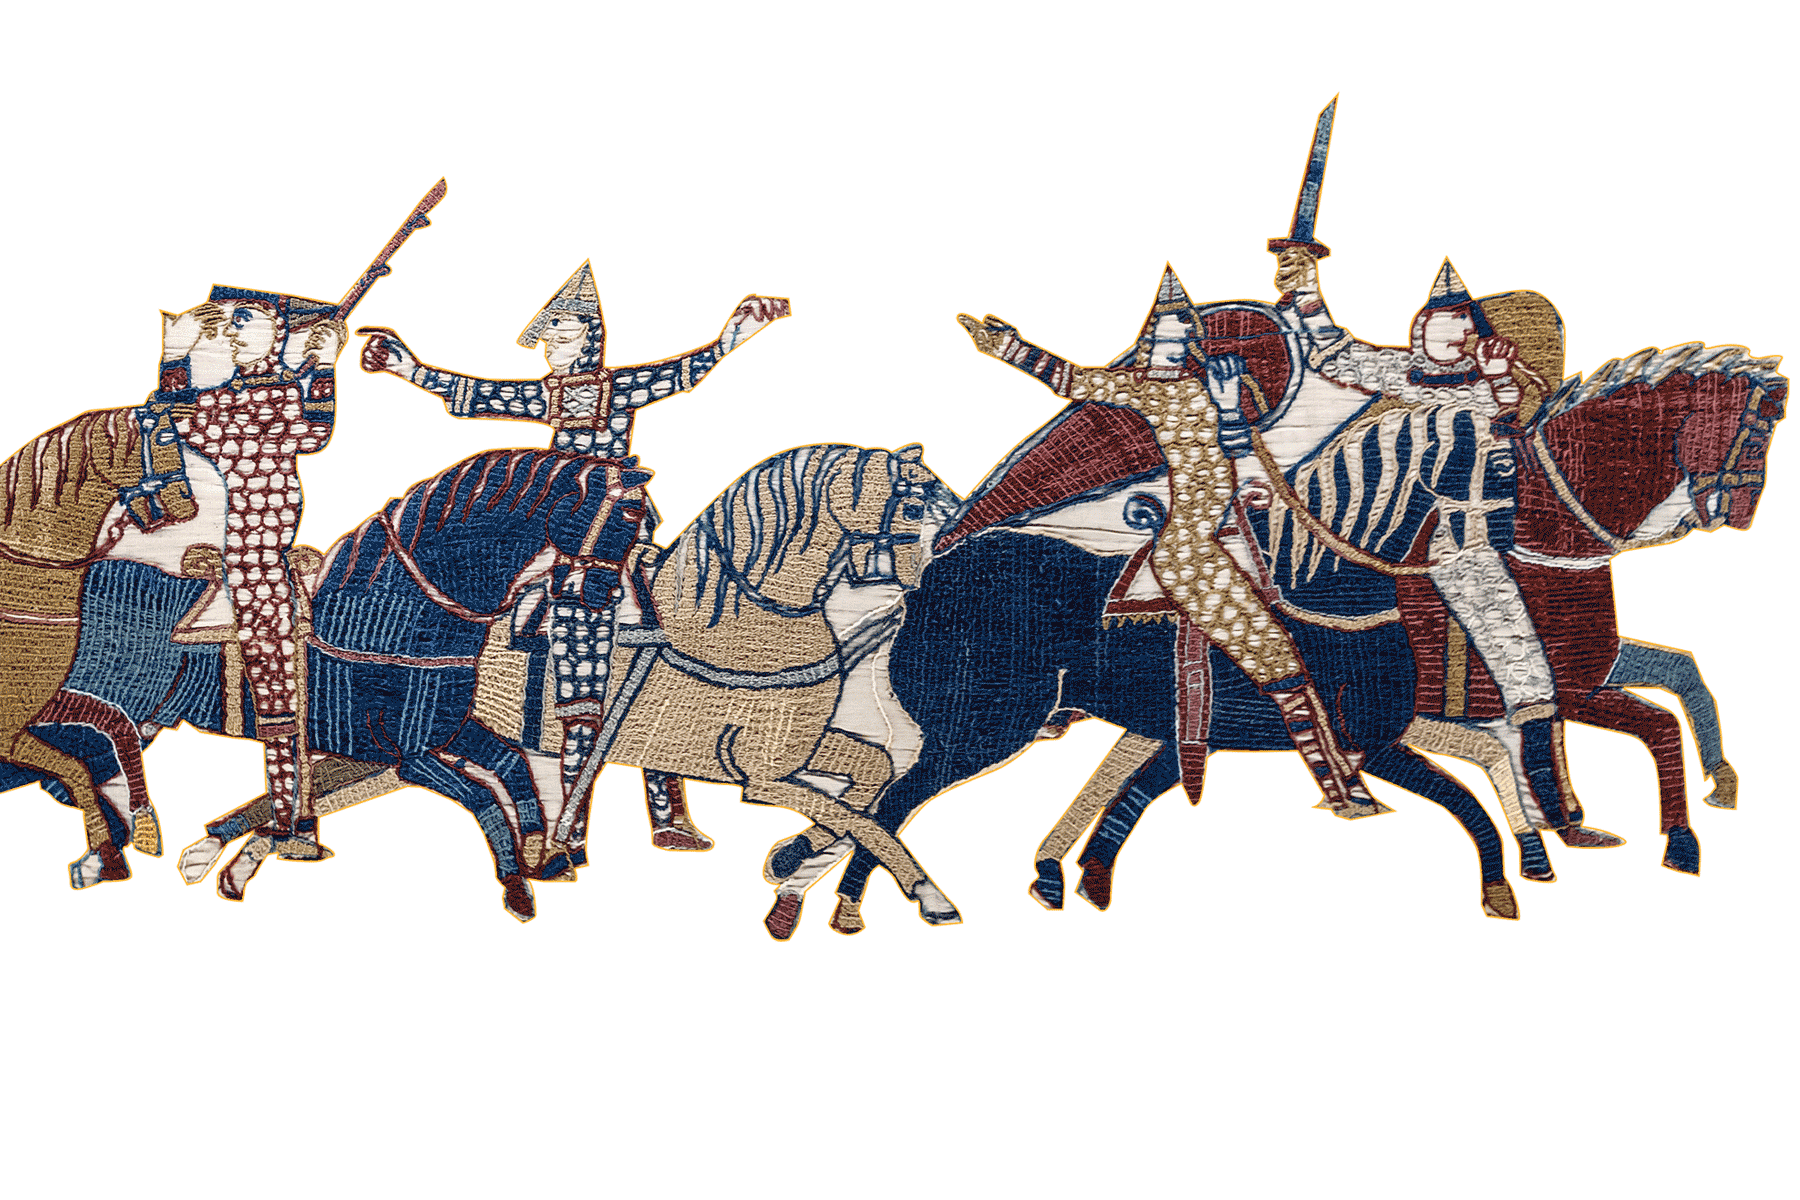 Knights clipart medieval war. Our history started in